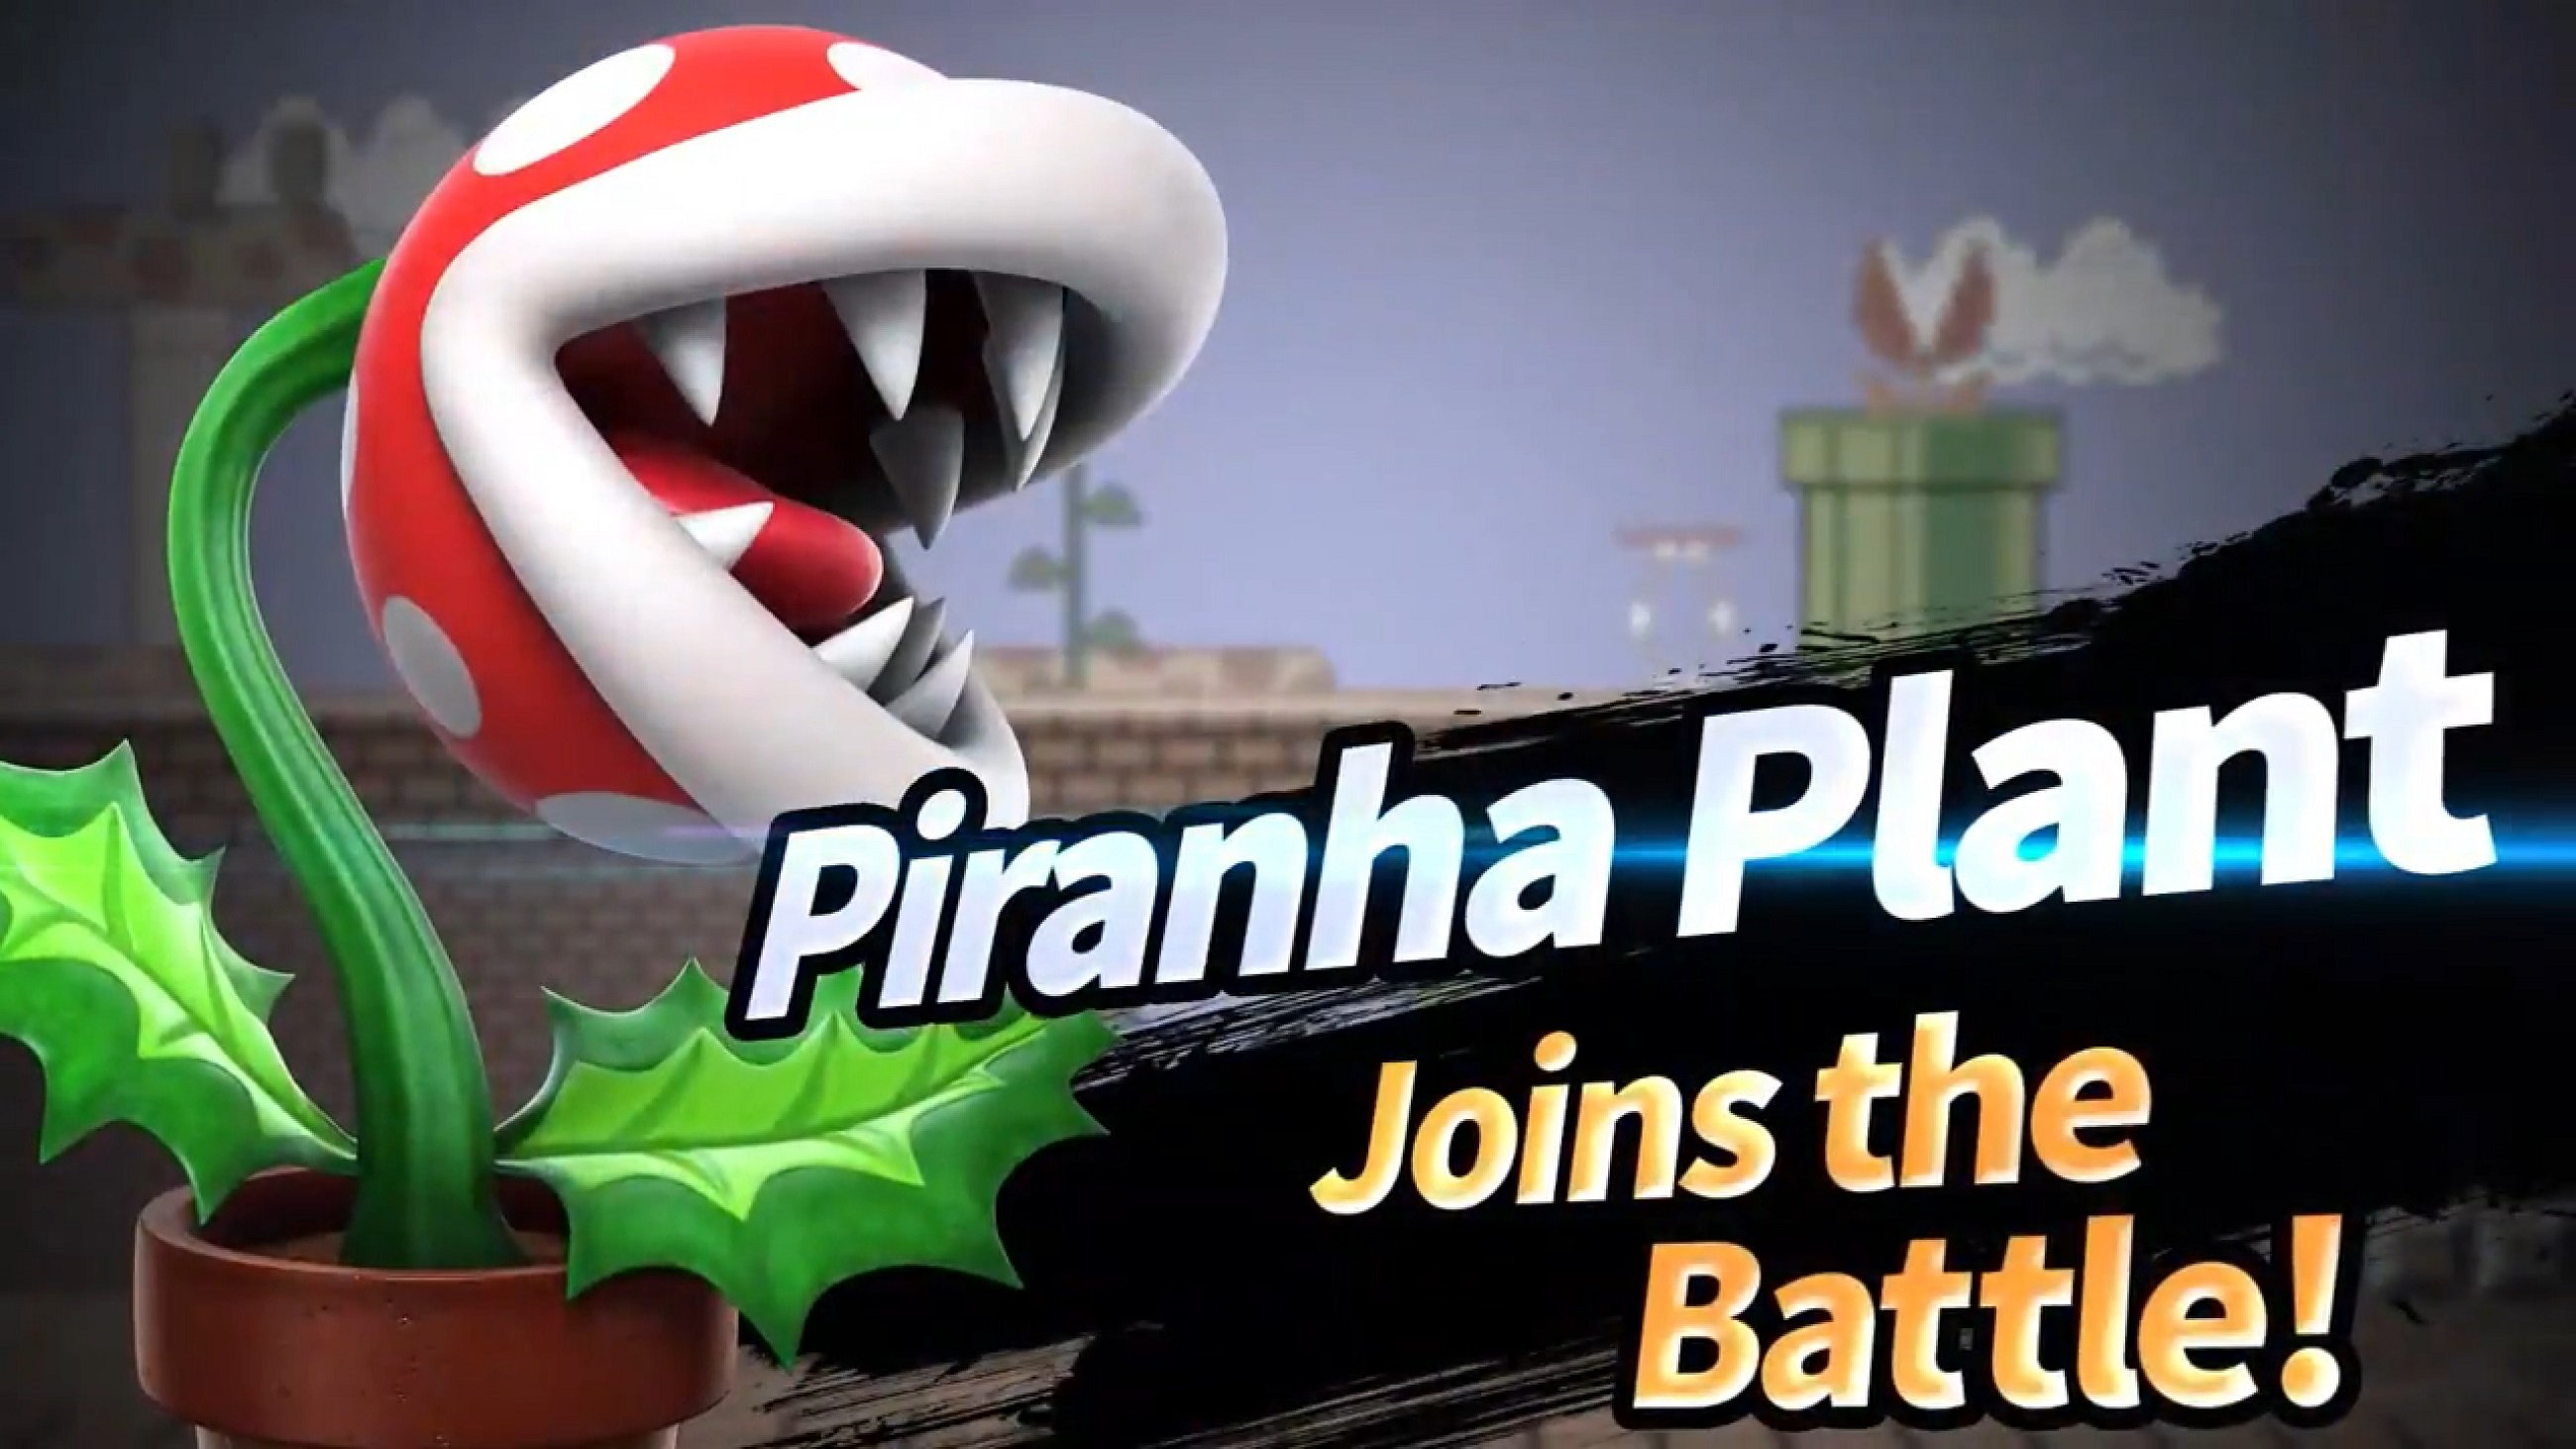 How to get Piranha Plant in Smash Bros Ultimate